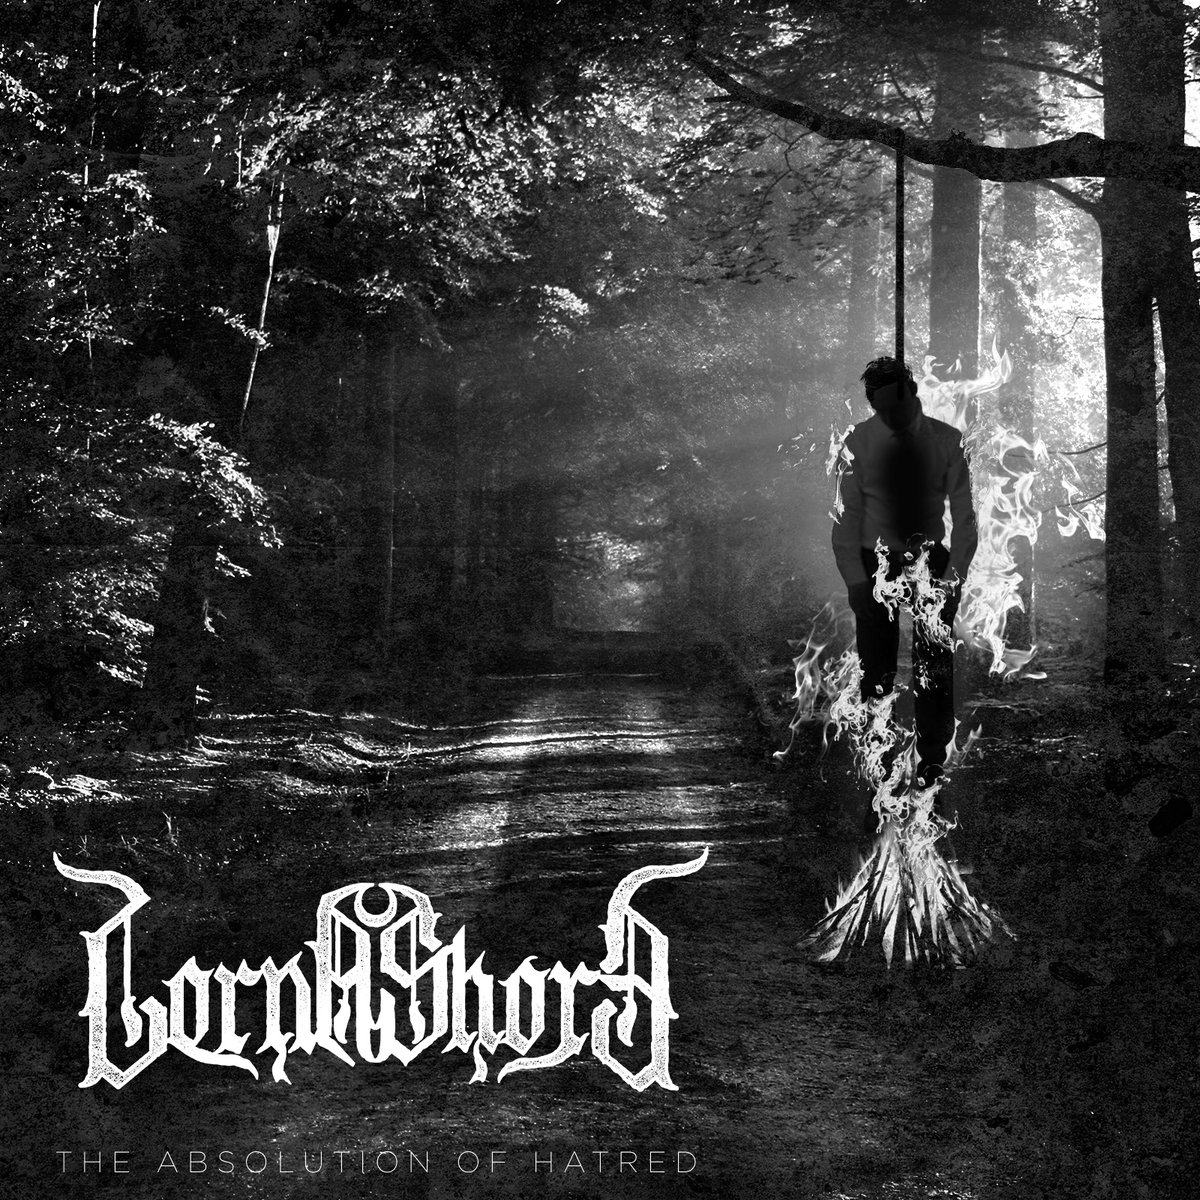 Lorna Shore - The Absolution of Hatred [single] (2015)